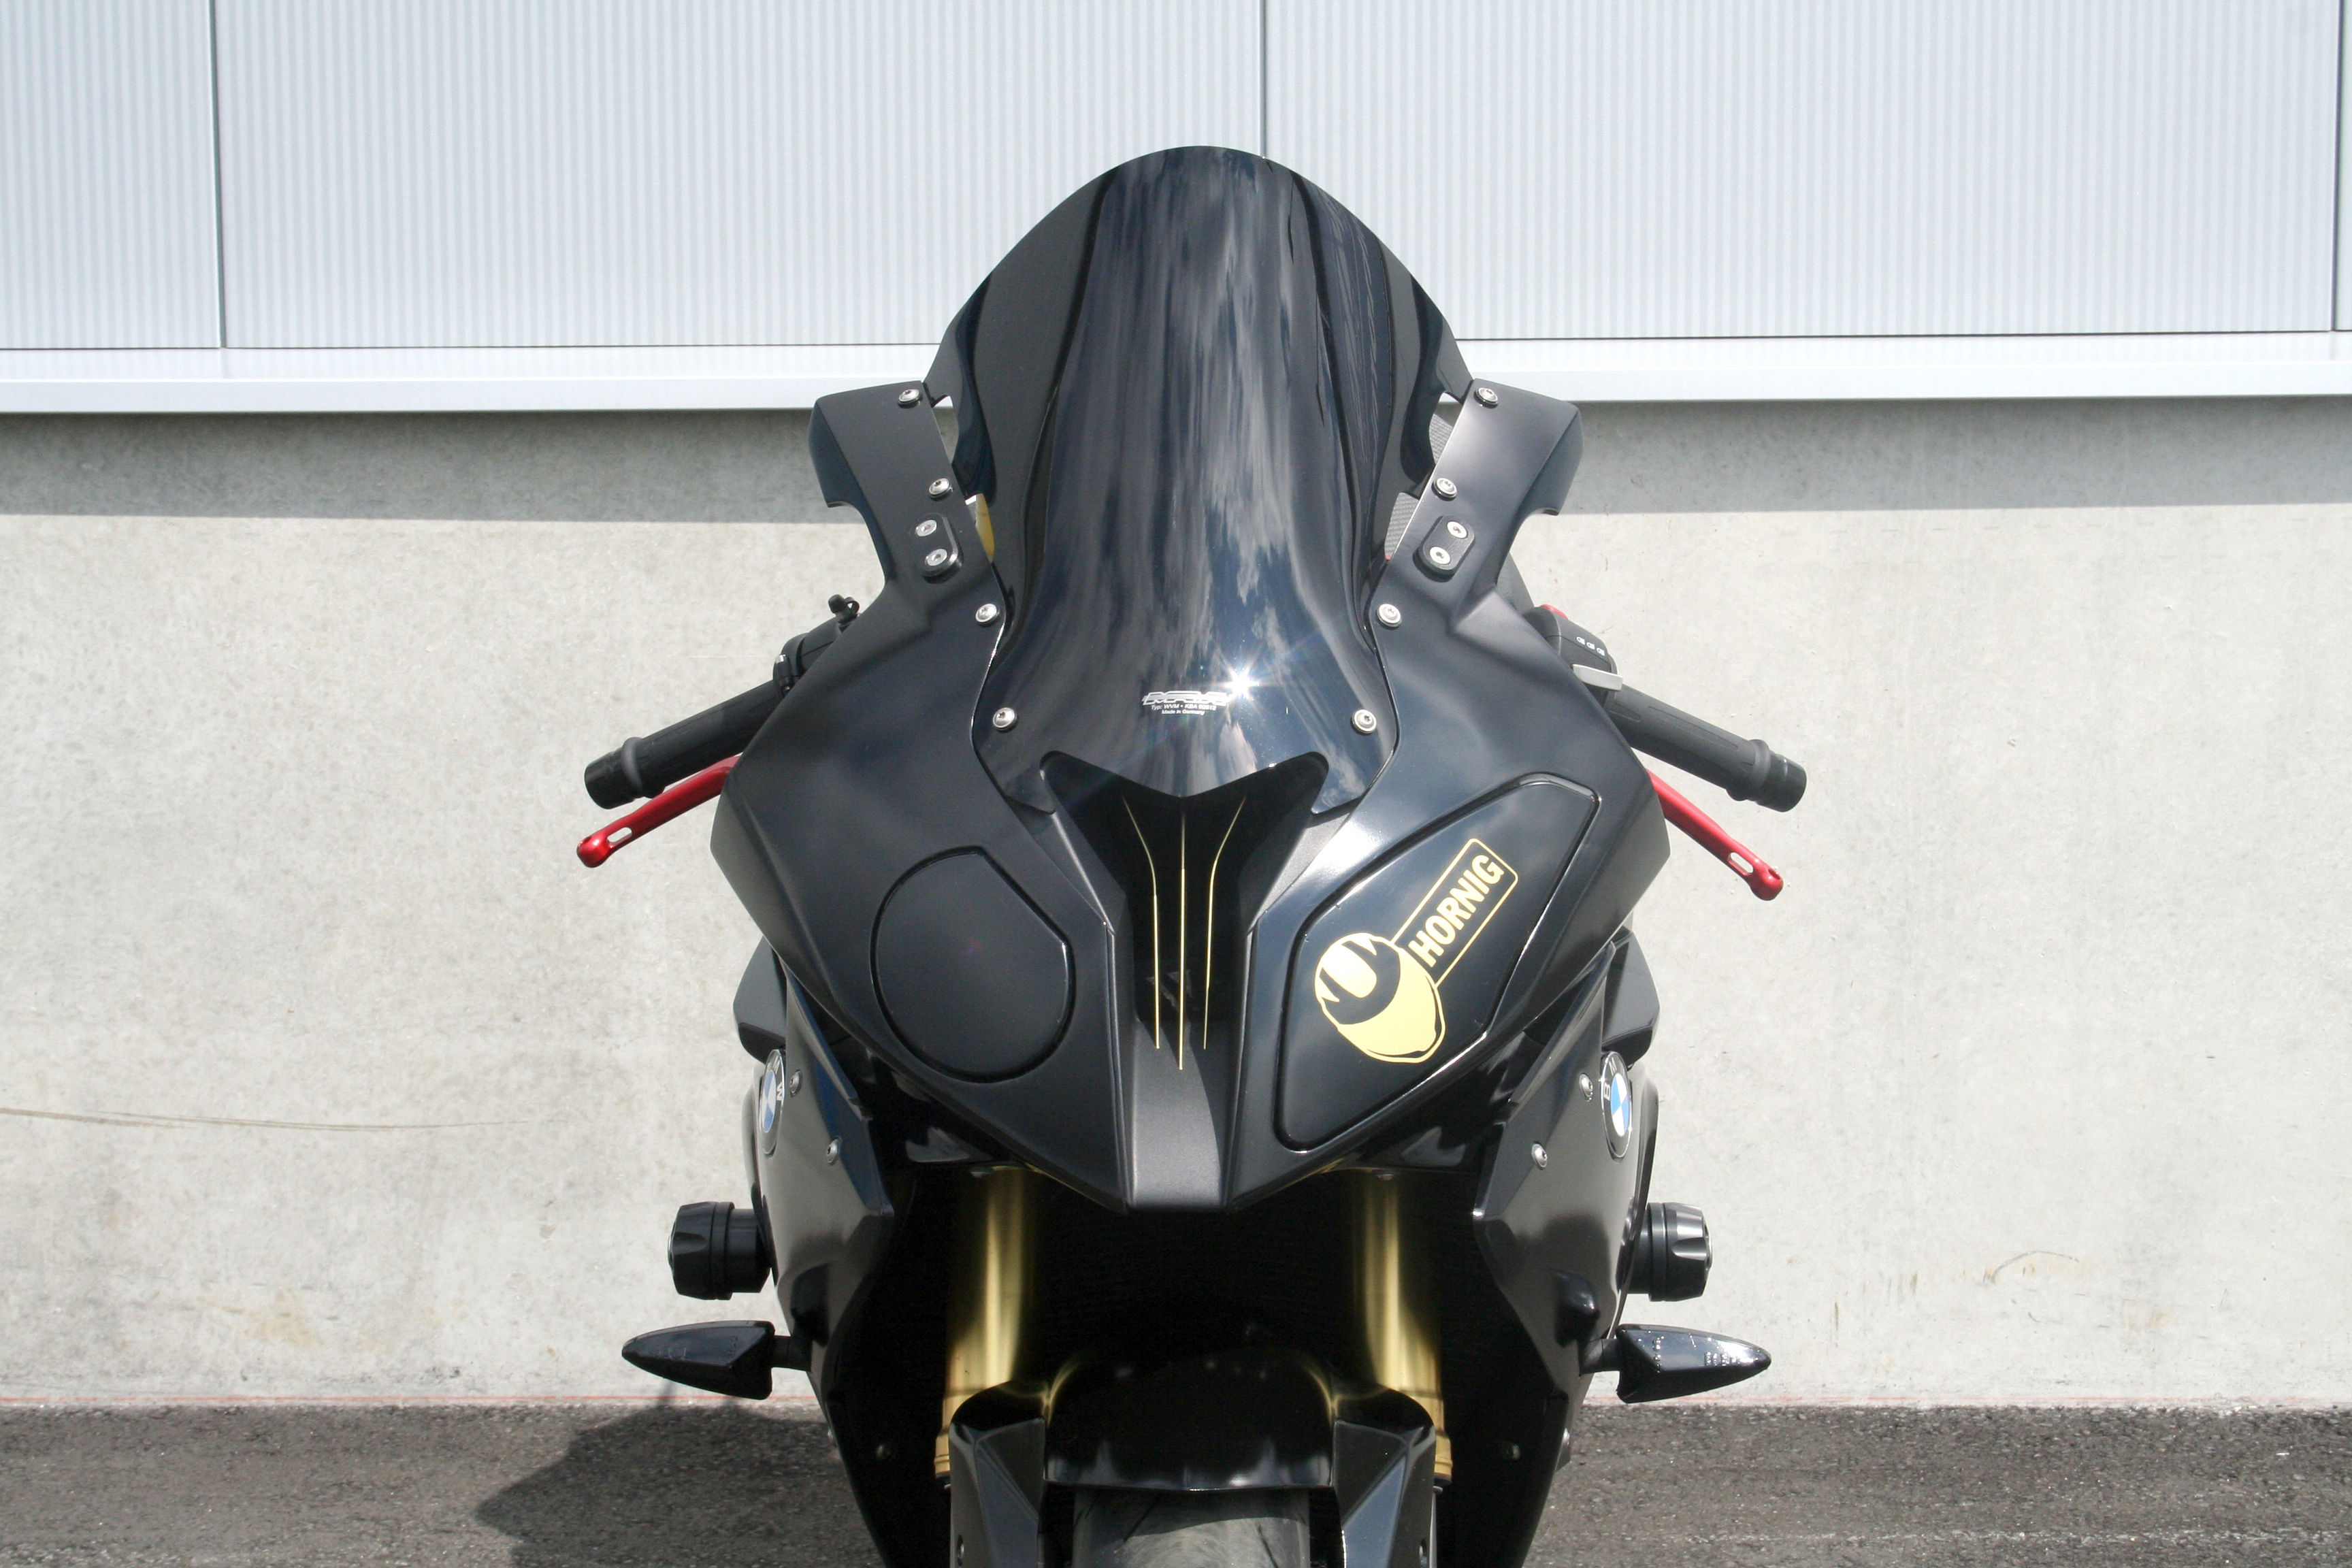 Hornig Bmw S1000rr Customization Motor Sports For The Street Motorcycle Accessory Hornig Parts For Your Bmw Motorrad